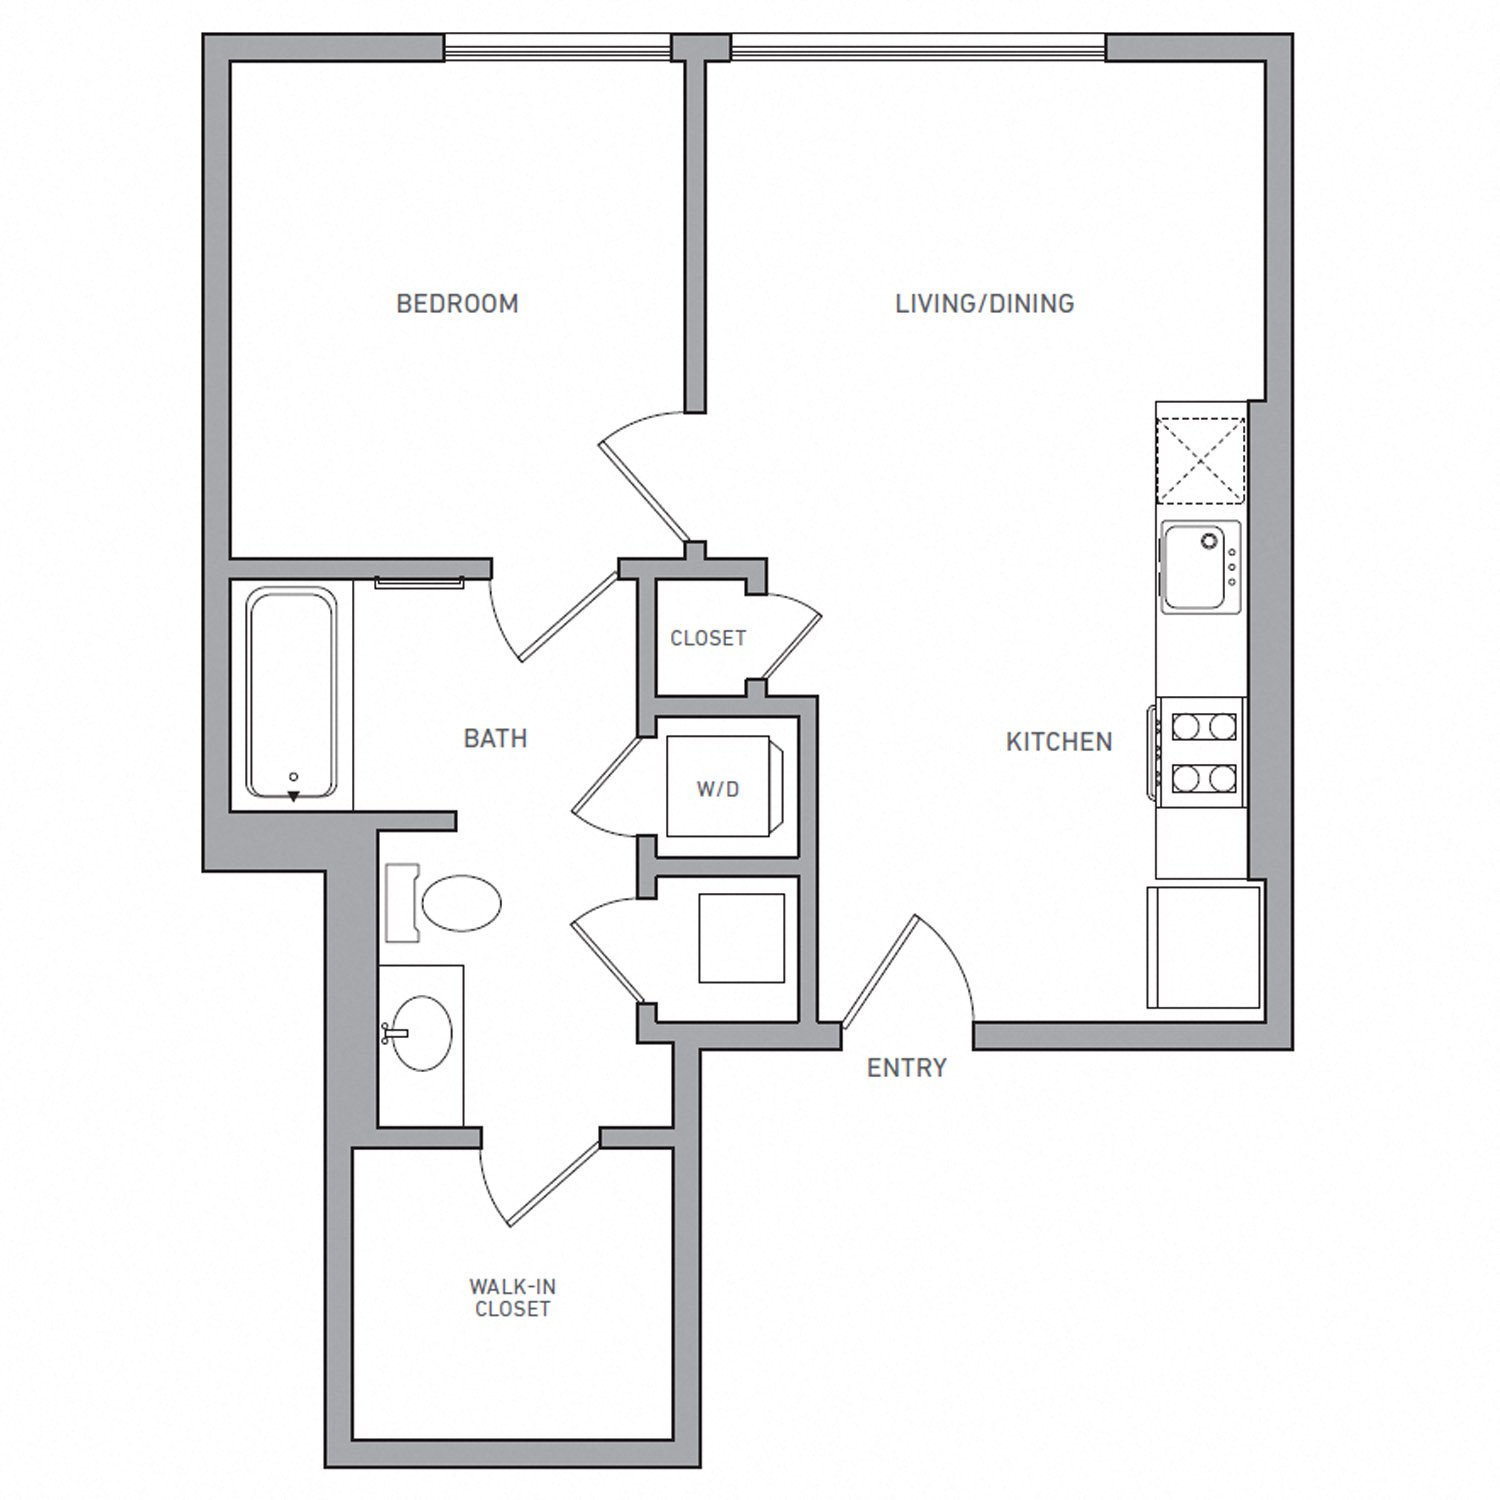 A One floor plan diagram. One bedroom, one bathroom, an open kitchen and living area, and a washer dryer.